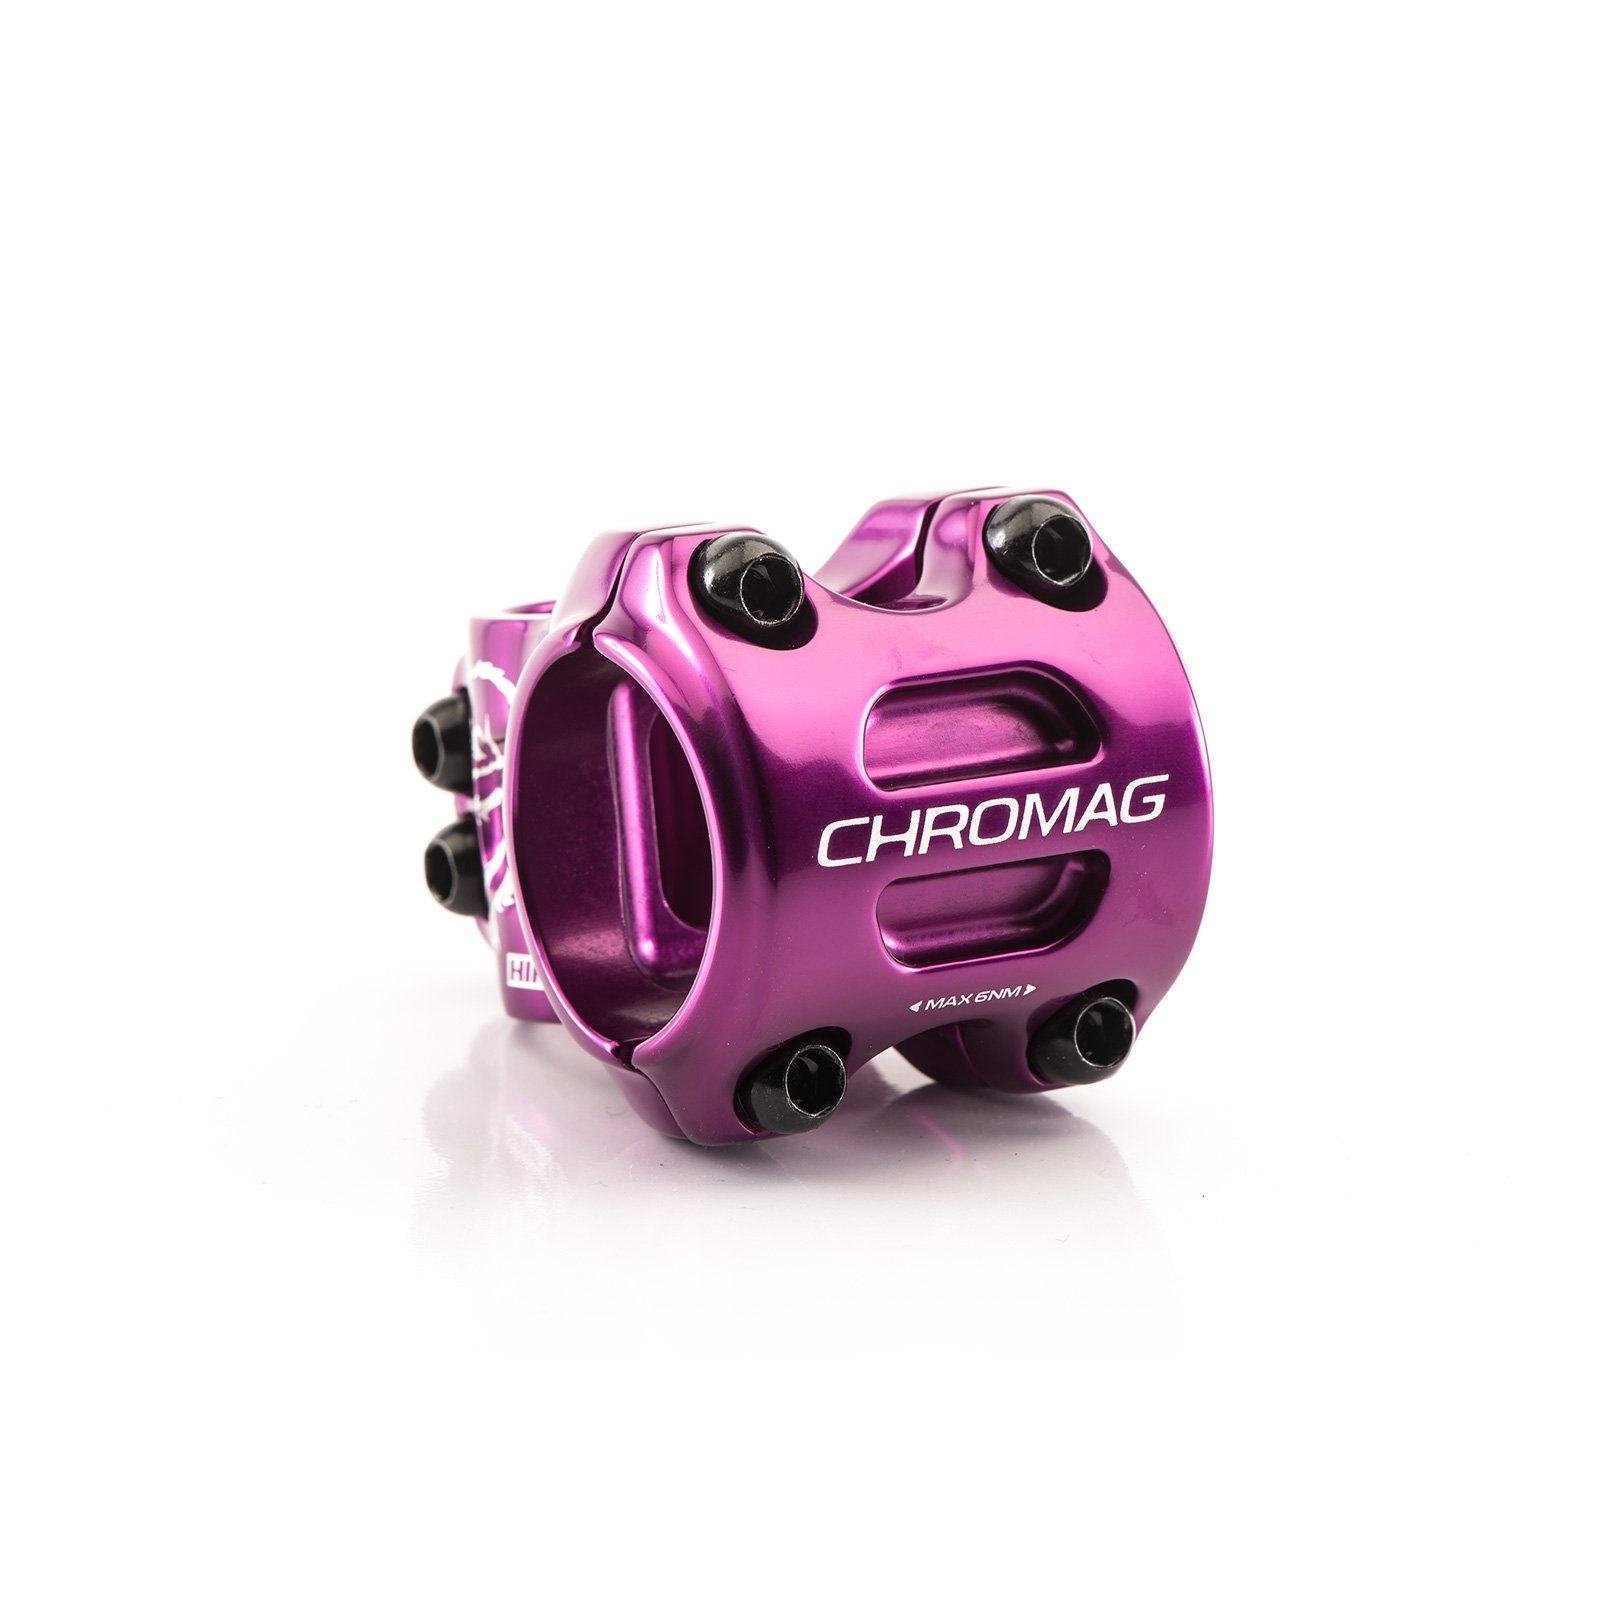 Chromag HIFI Stem 35mm Length / 35 Diameter-2